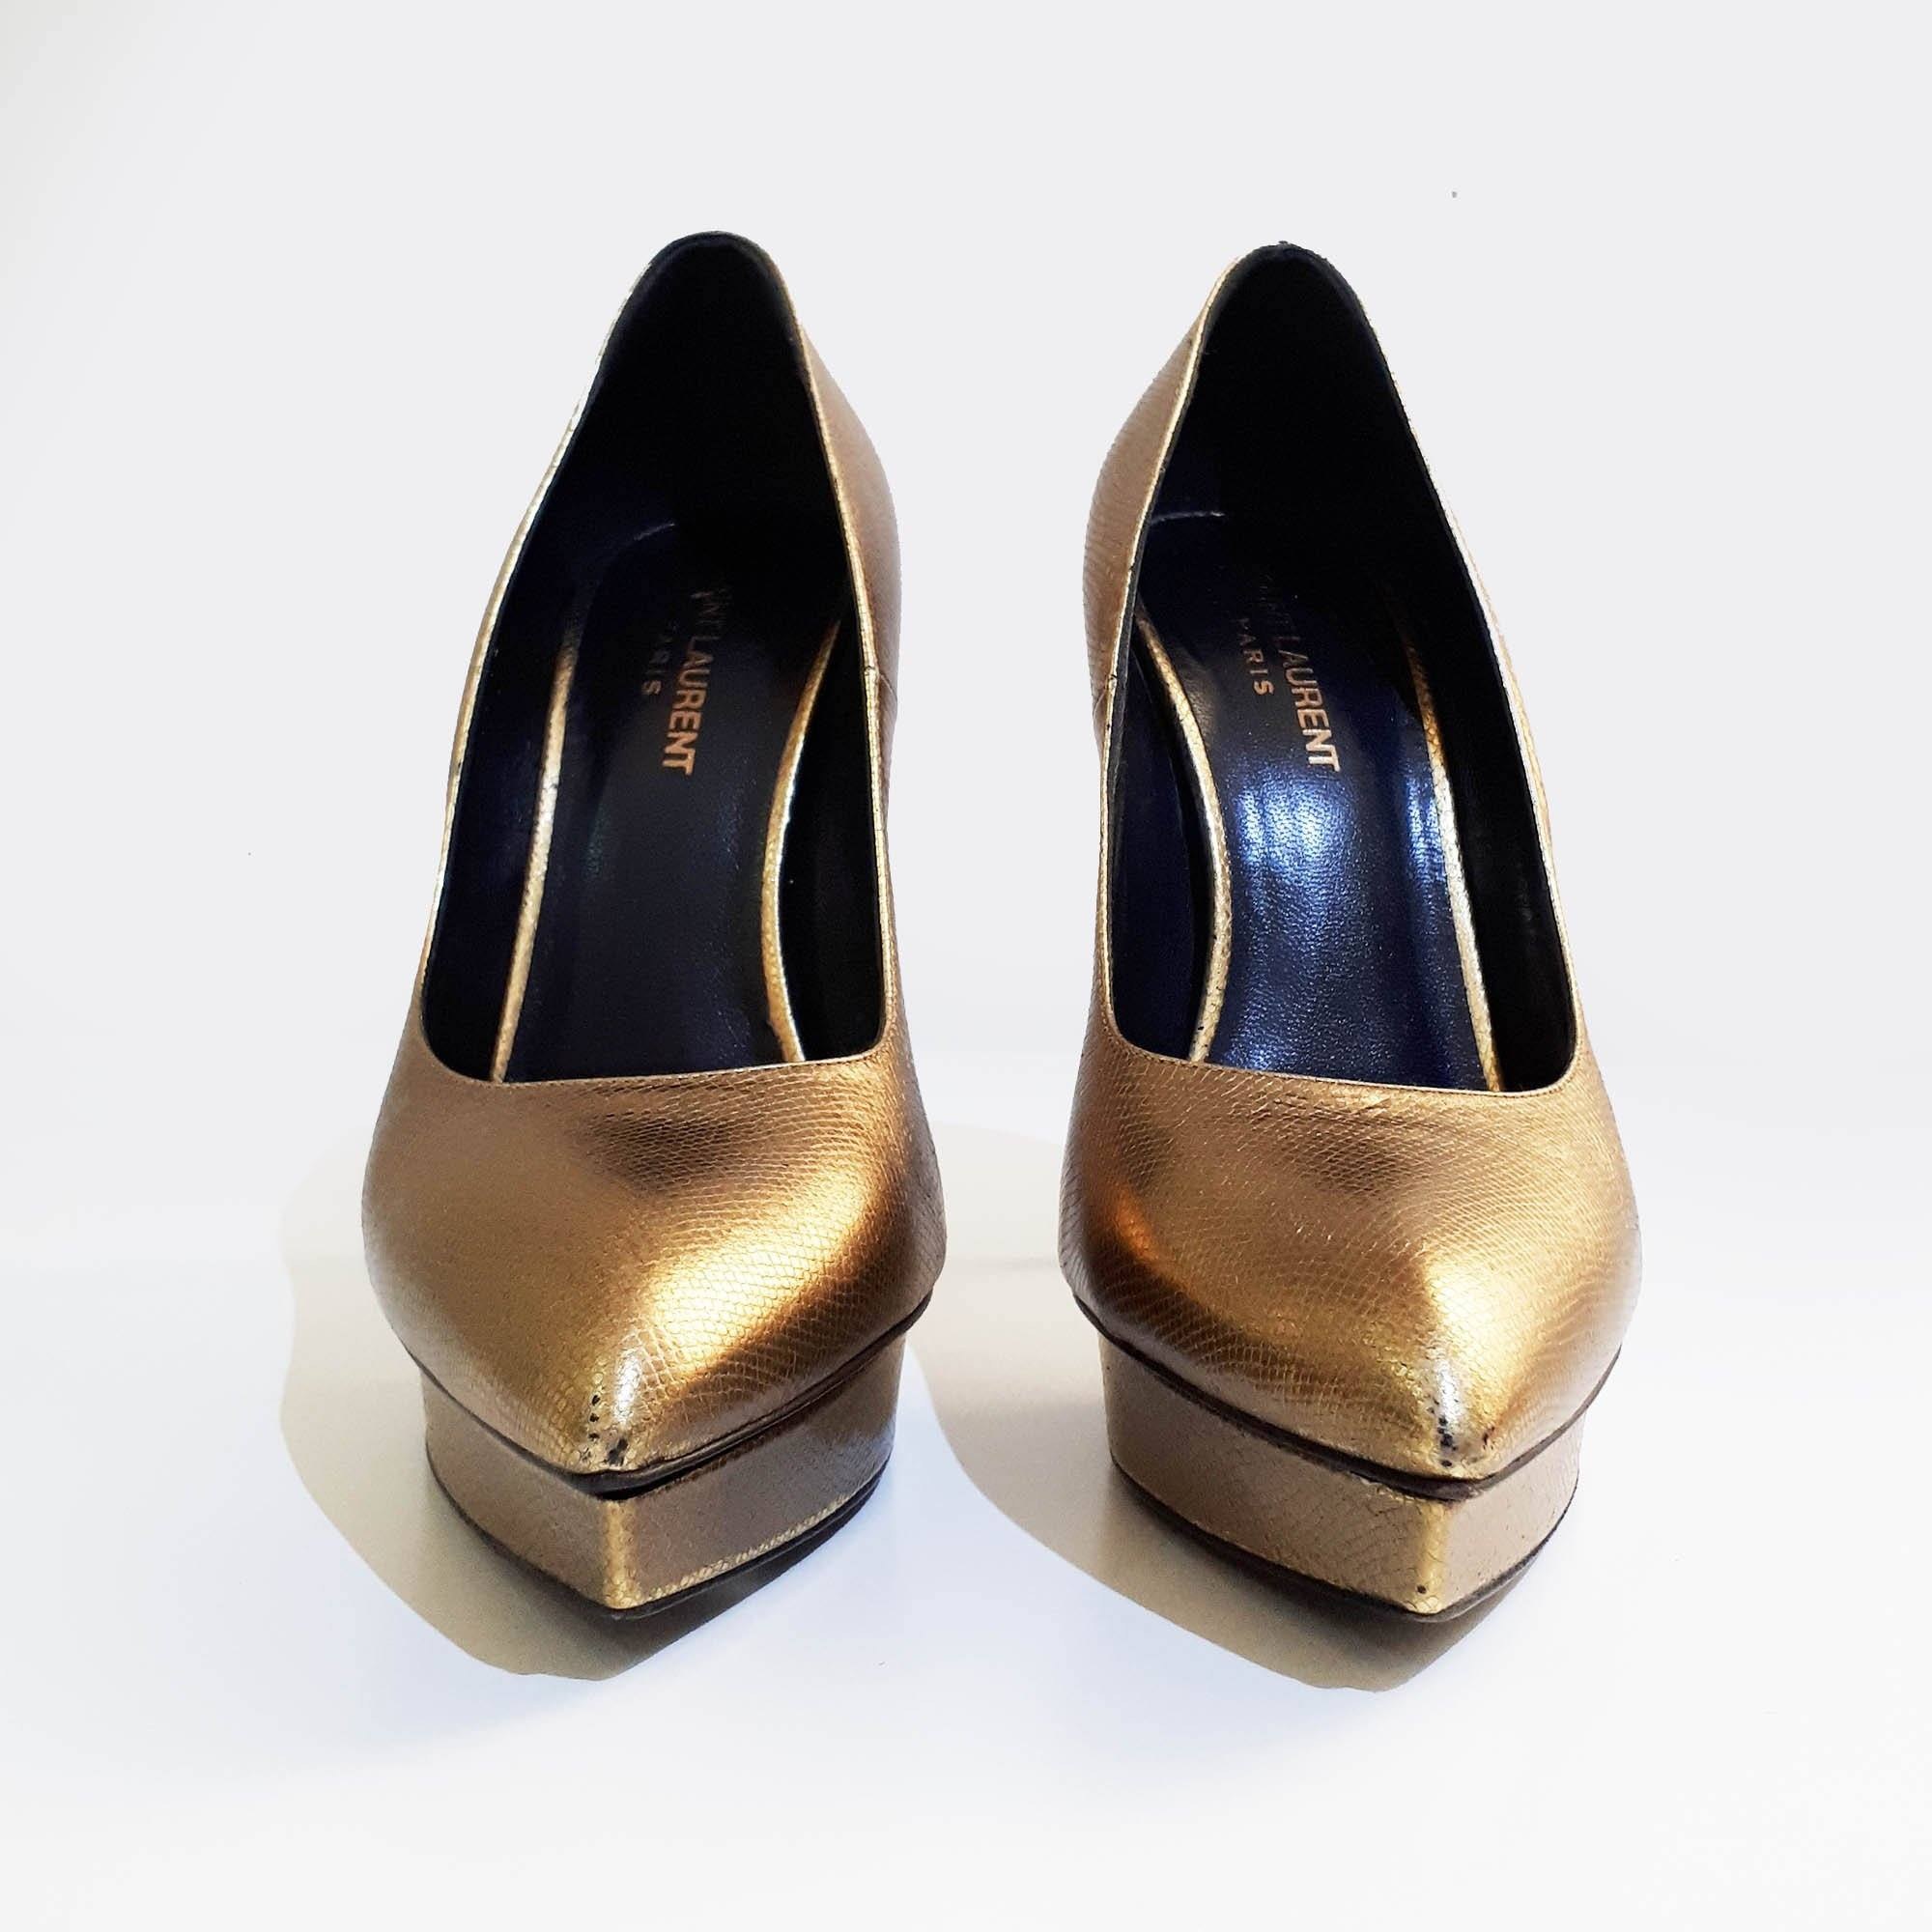 Saint Laurent Gold Platform Pumps